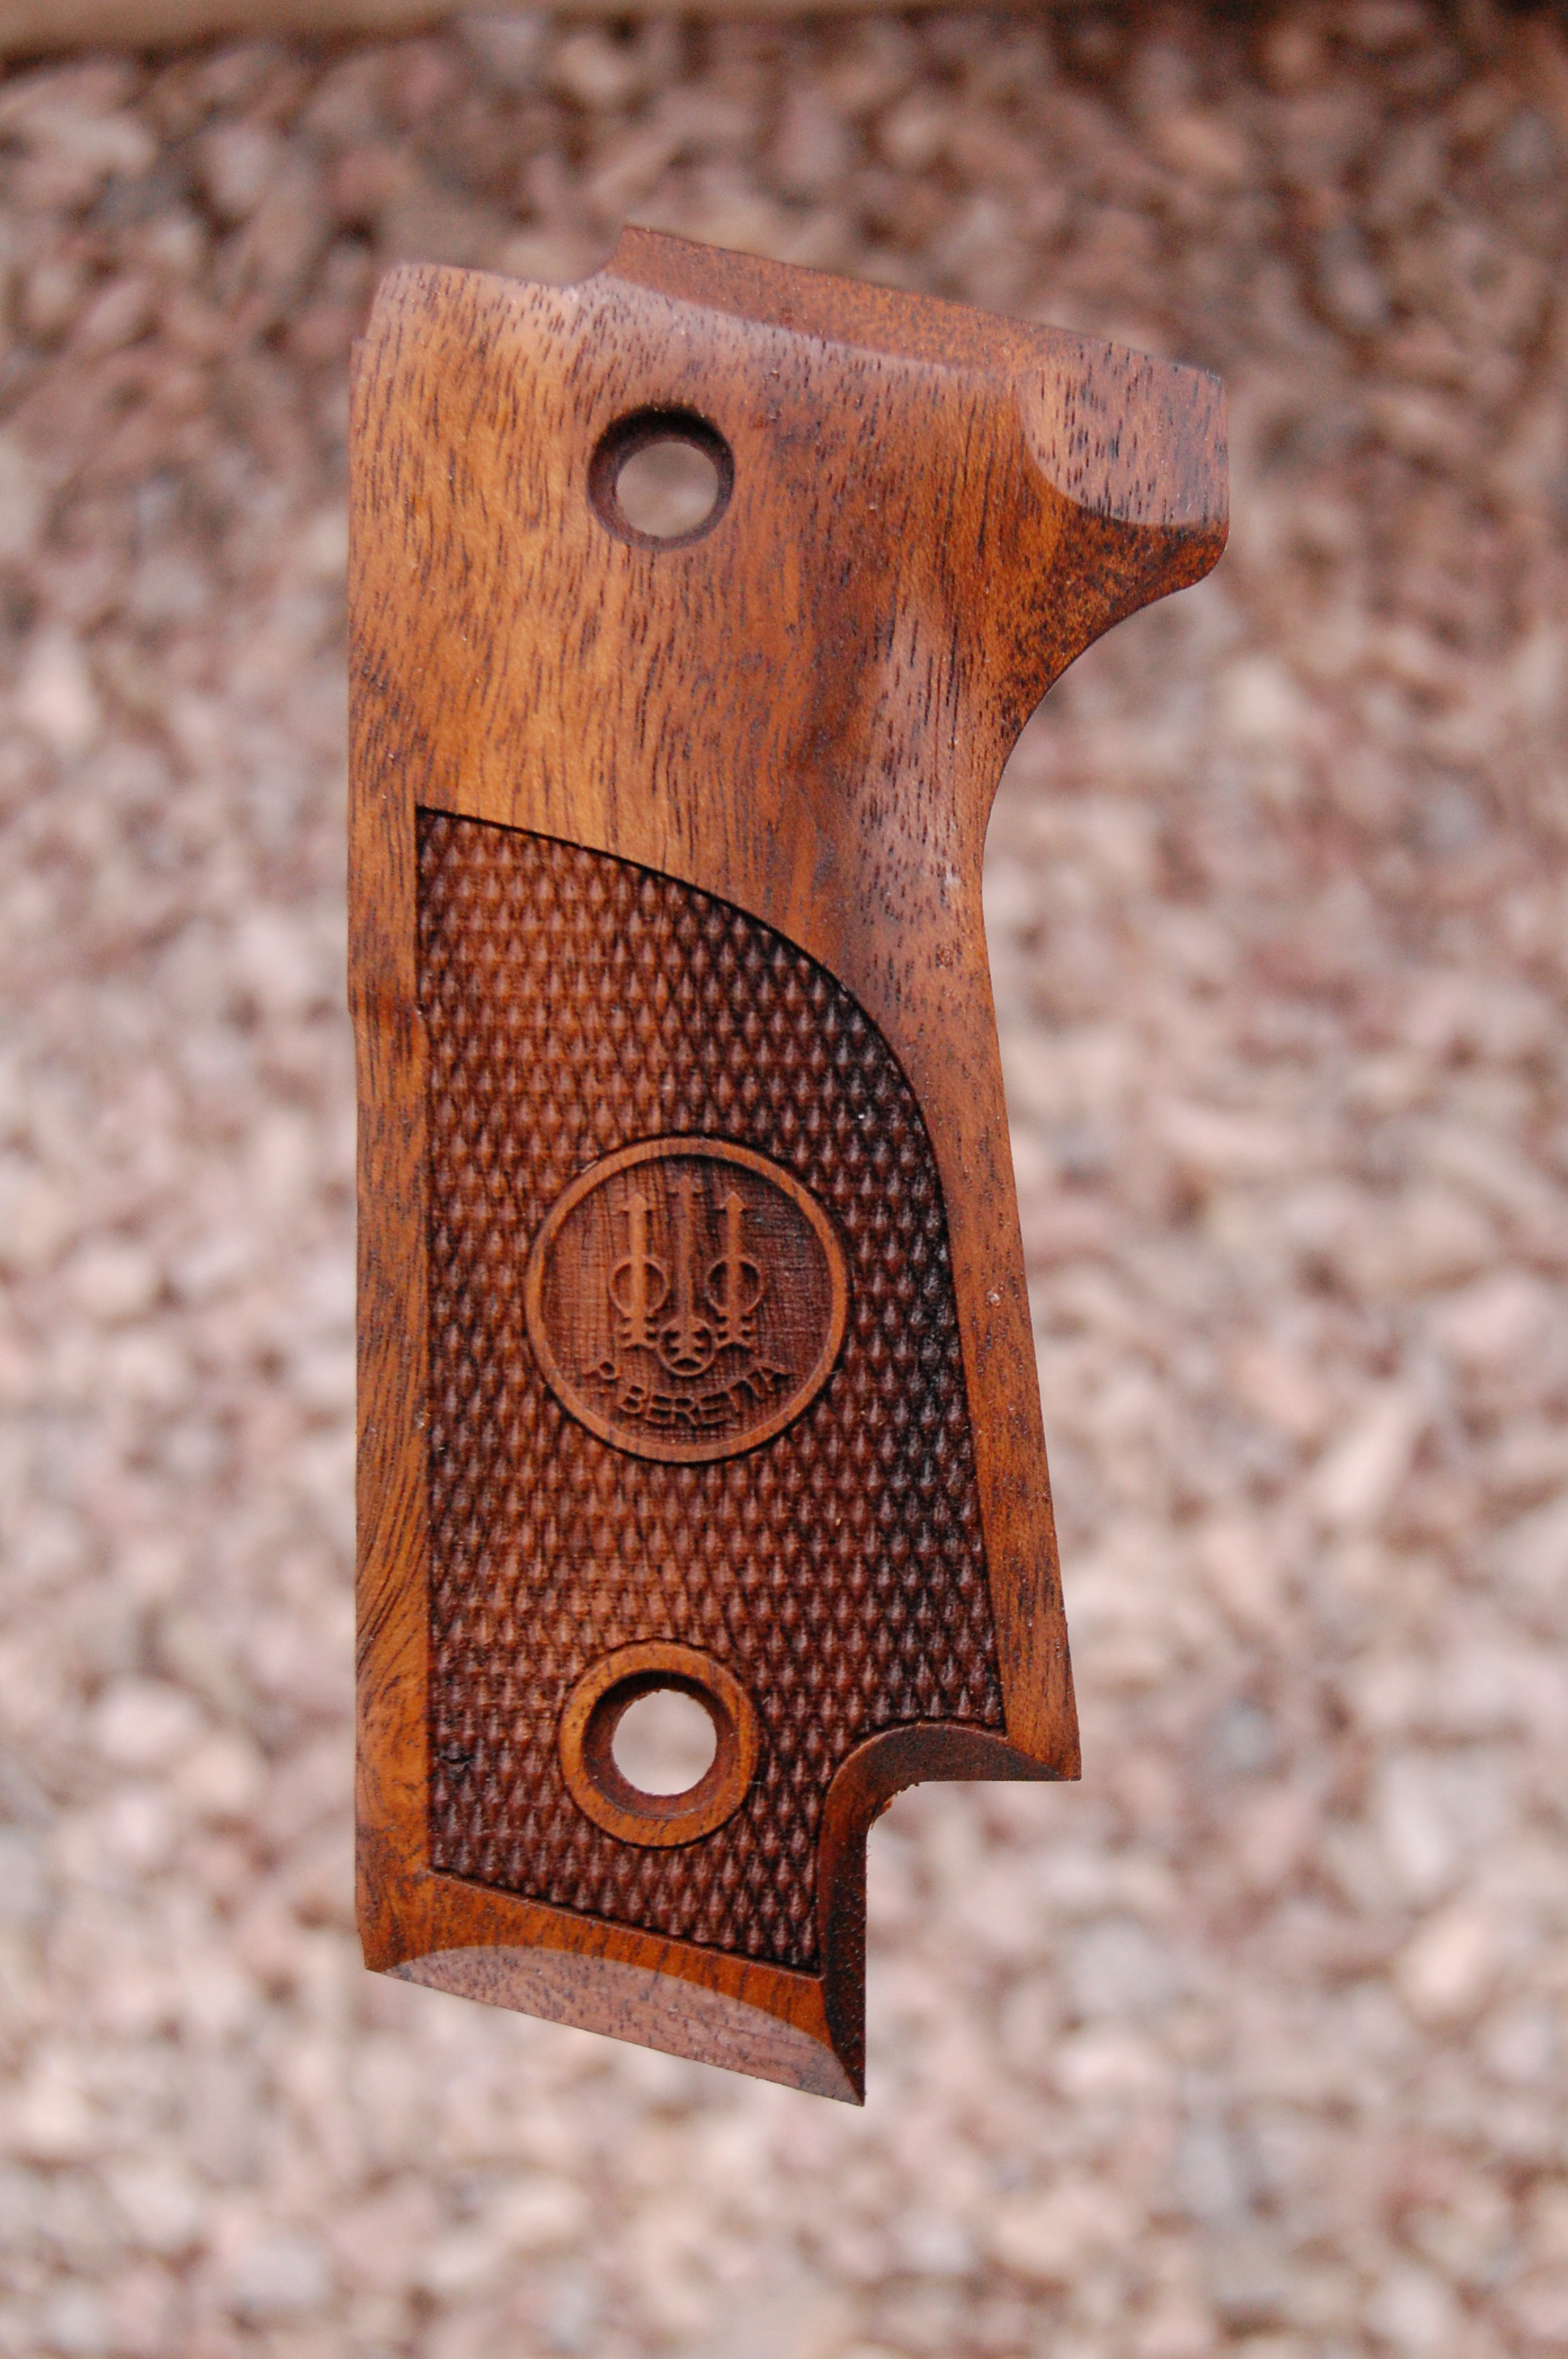 BERETTA 92S grips (checkered+logo) - full size